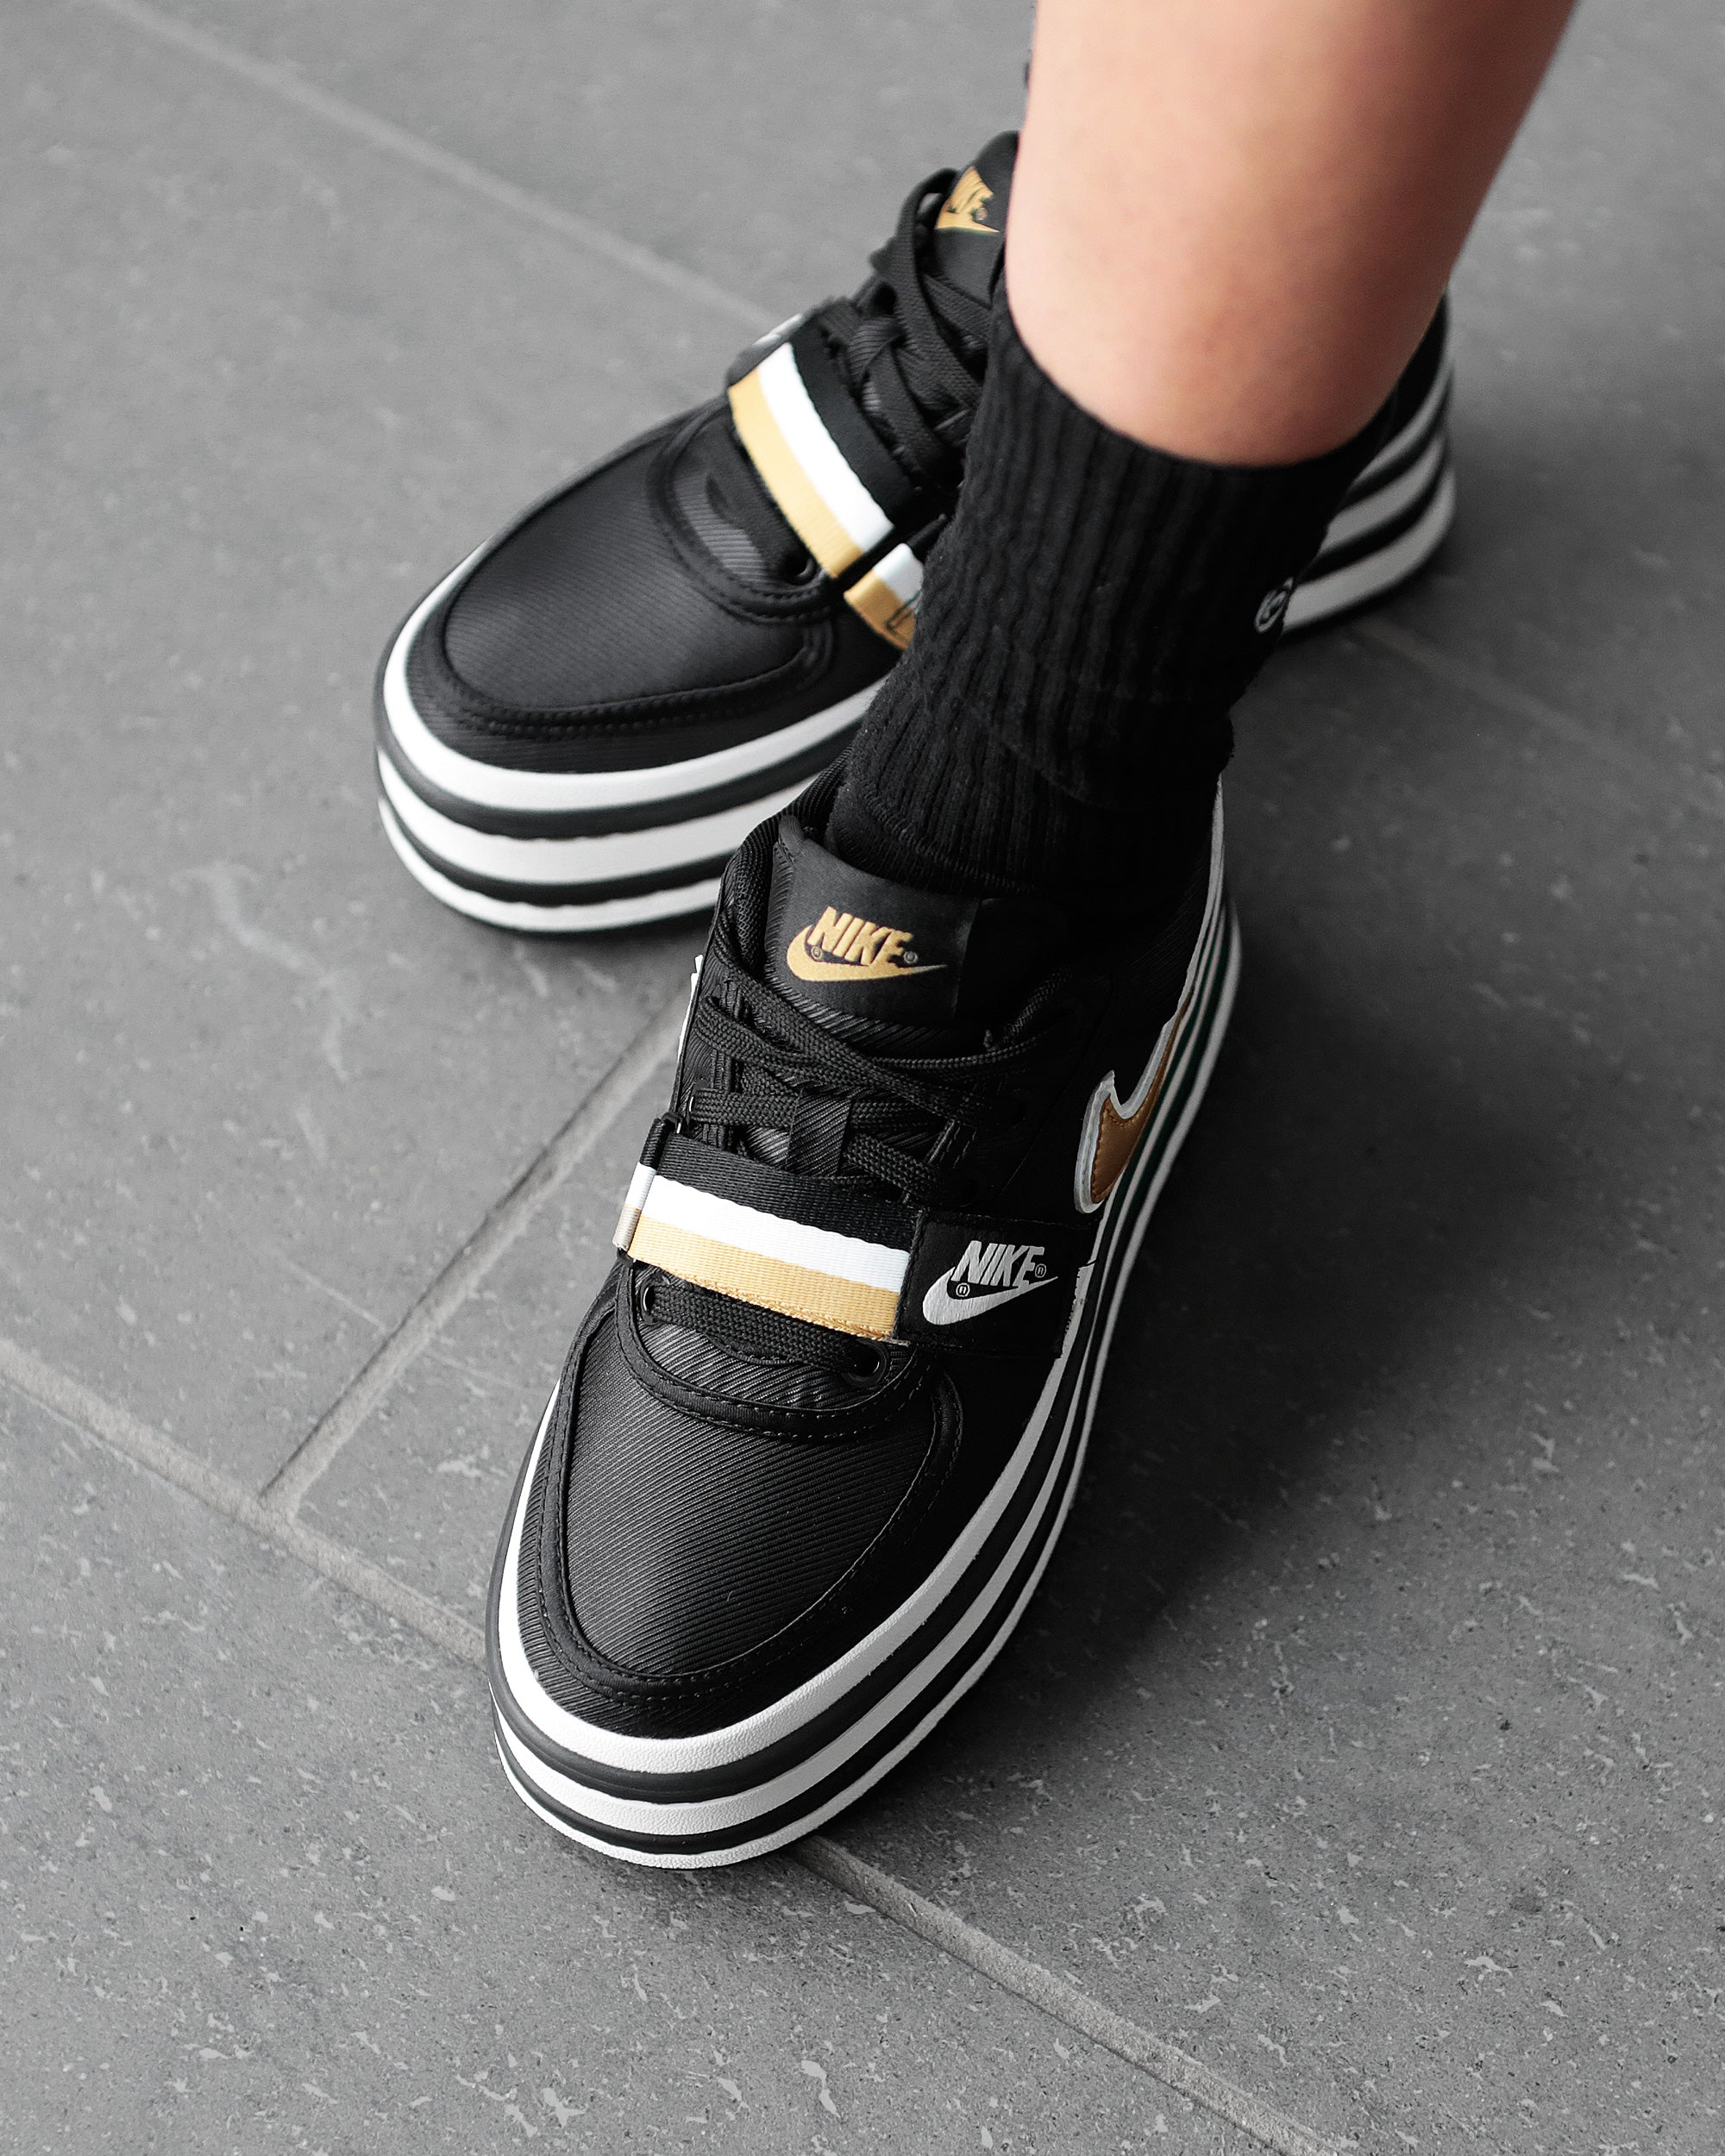 factory price 9651e c283e 2b9d6 accfd; spain the nike womens vandal 2k double stack 120 releasing  saturday 5 5 at 124b allen